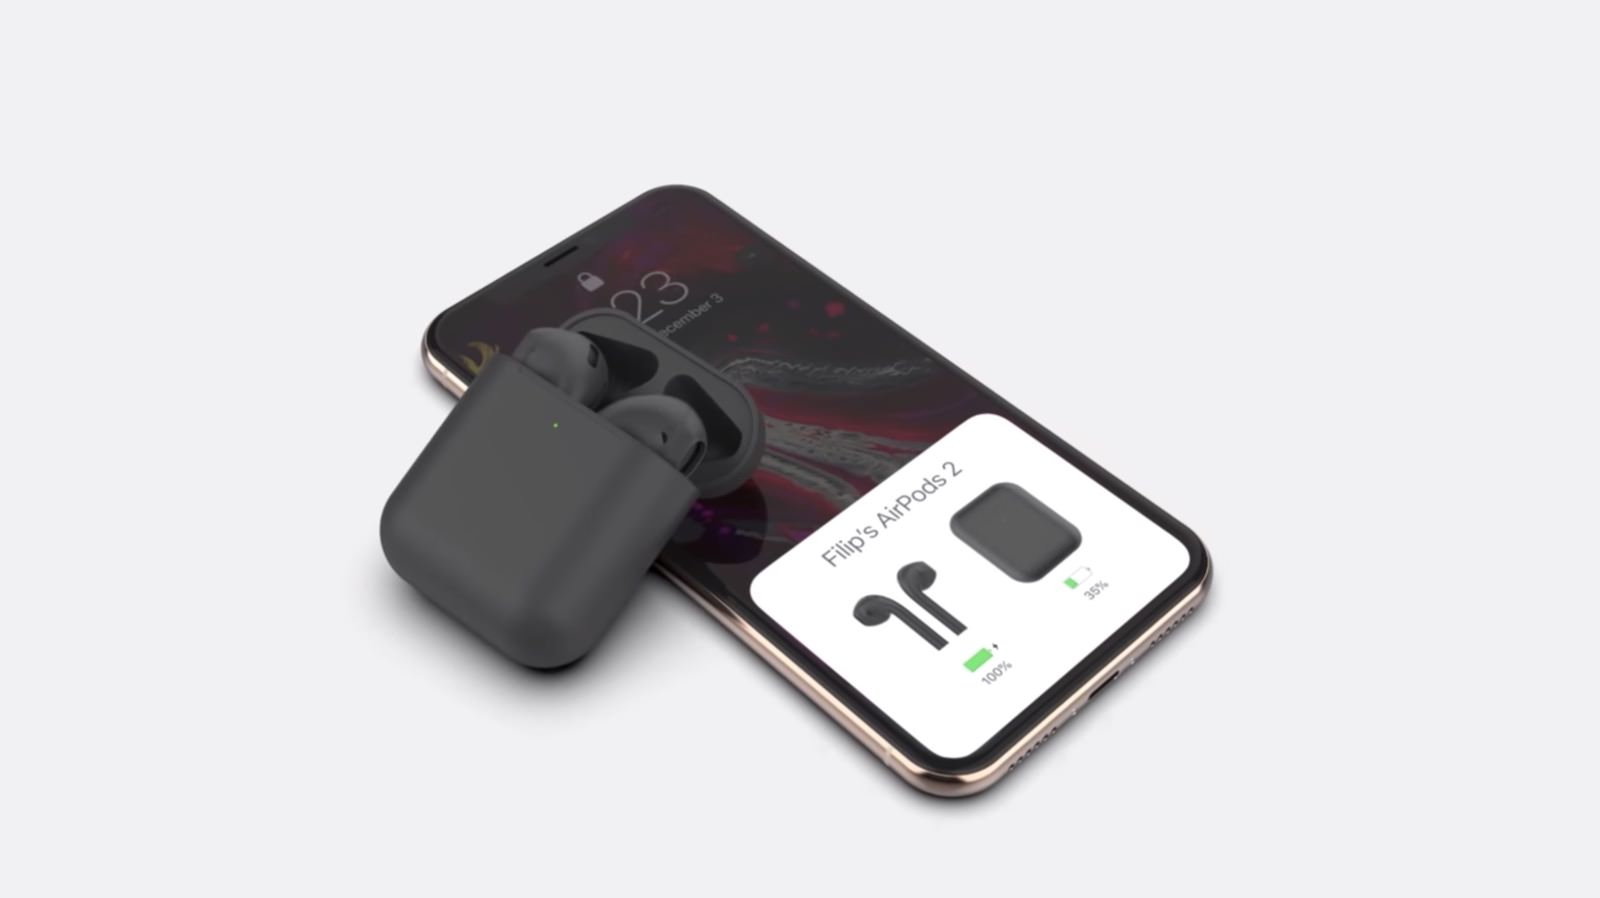 AirPods Black Model Concept Image 2